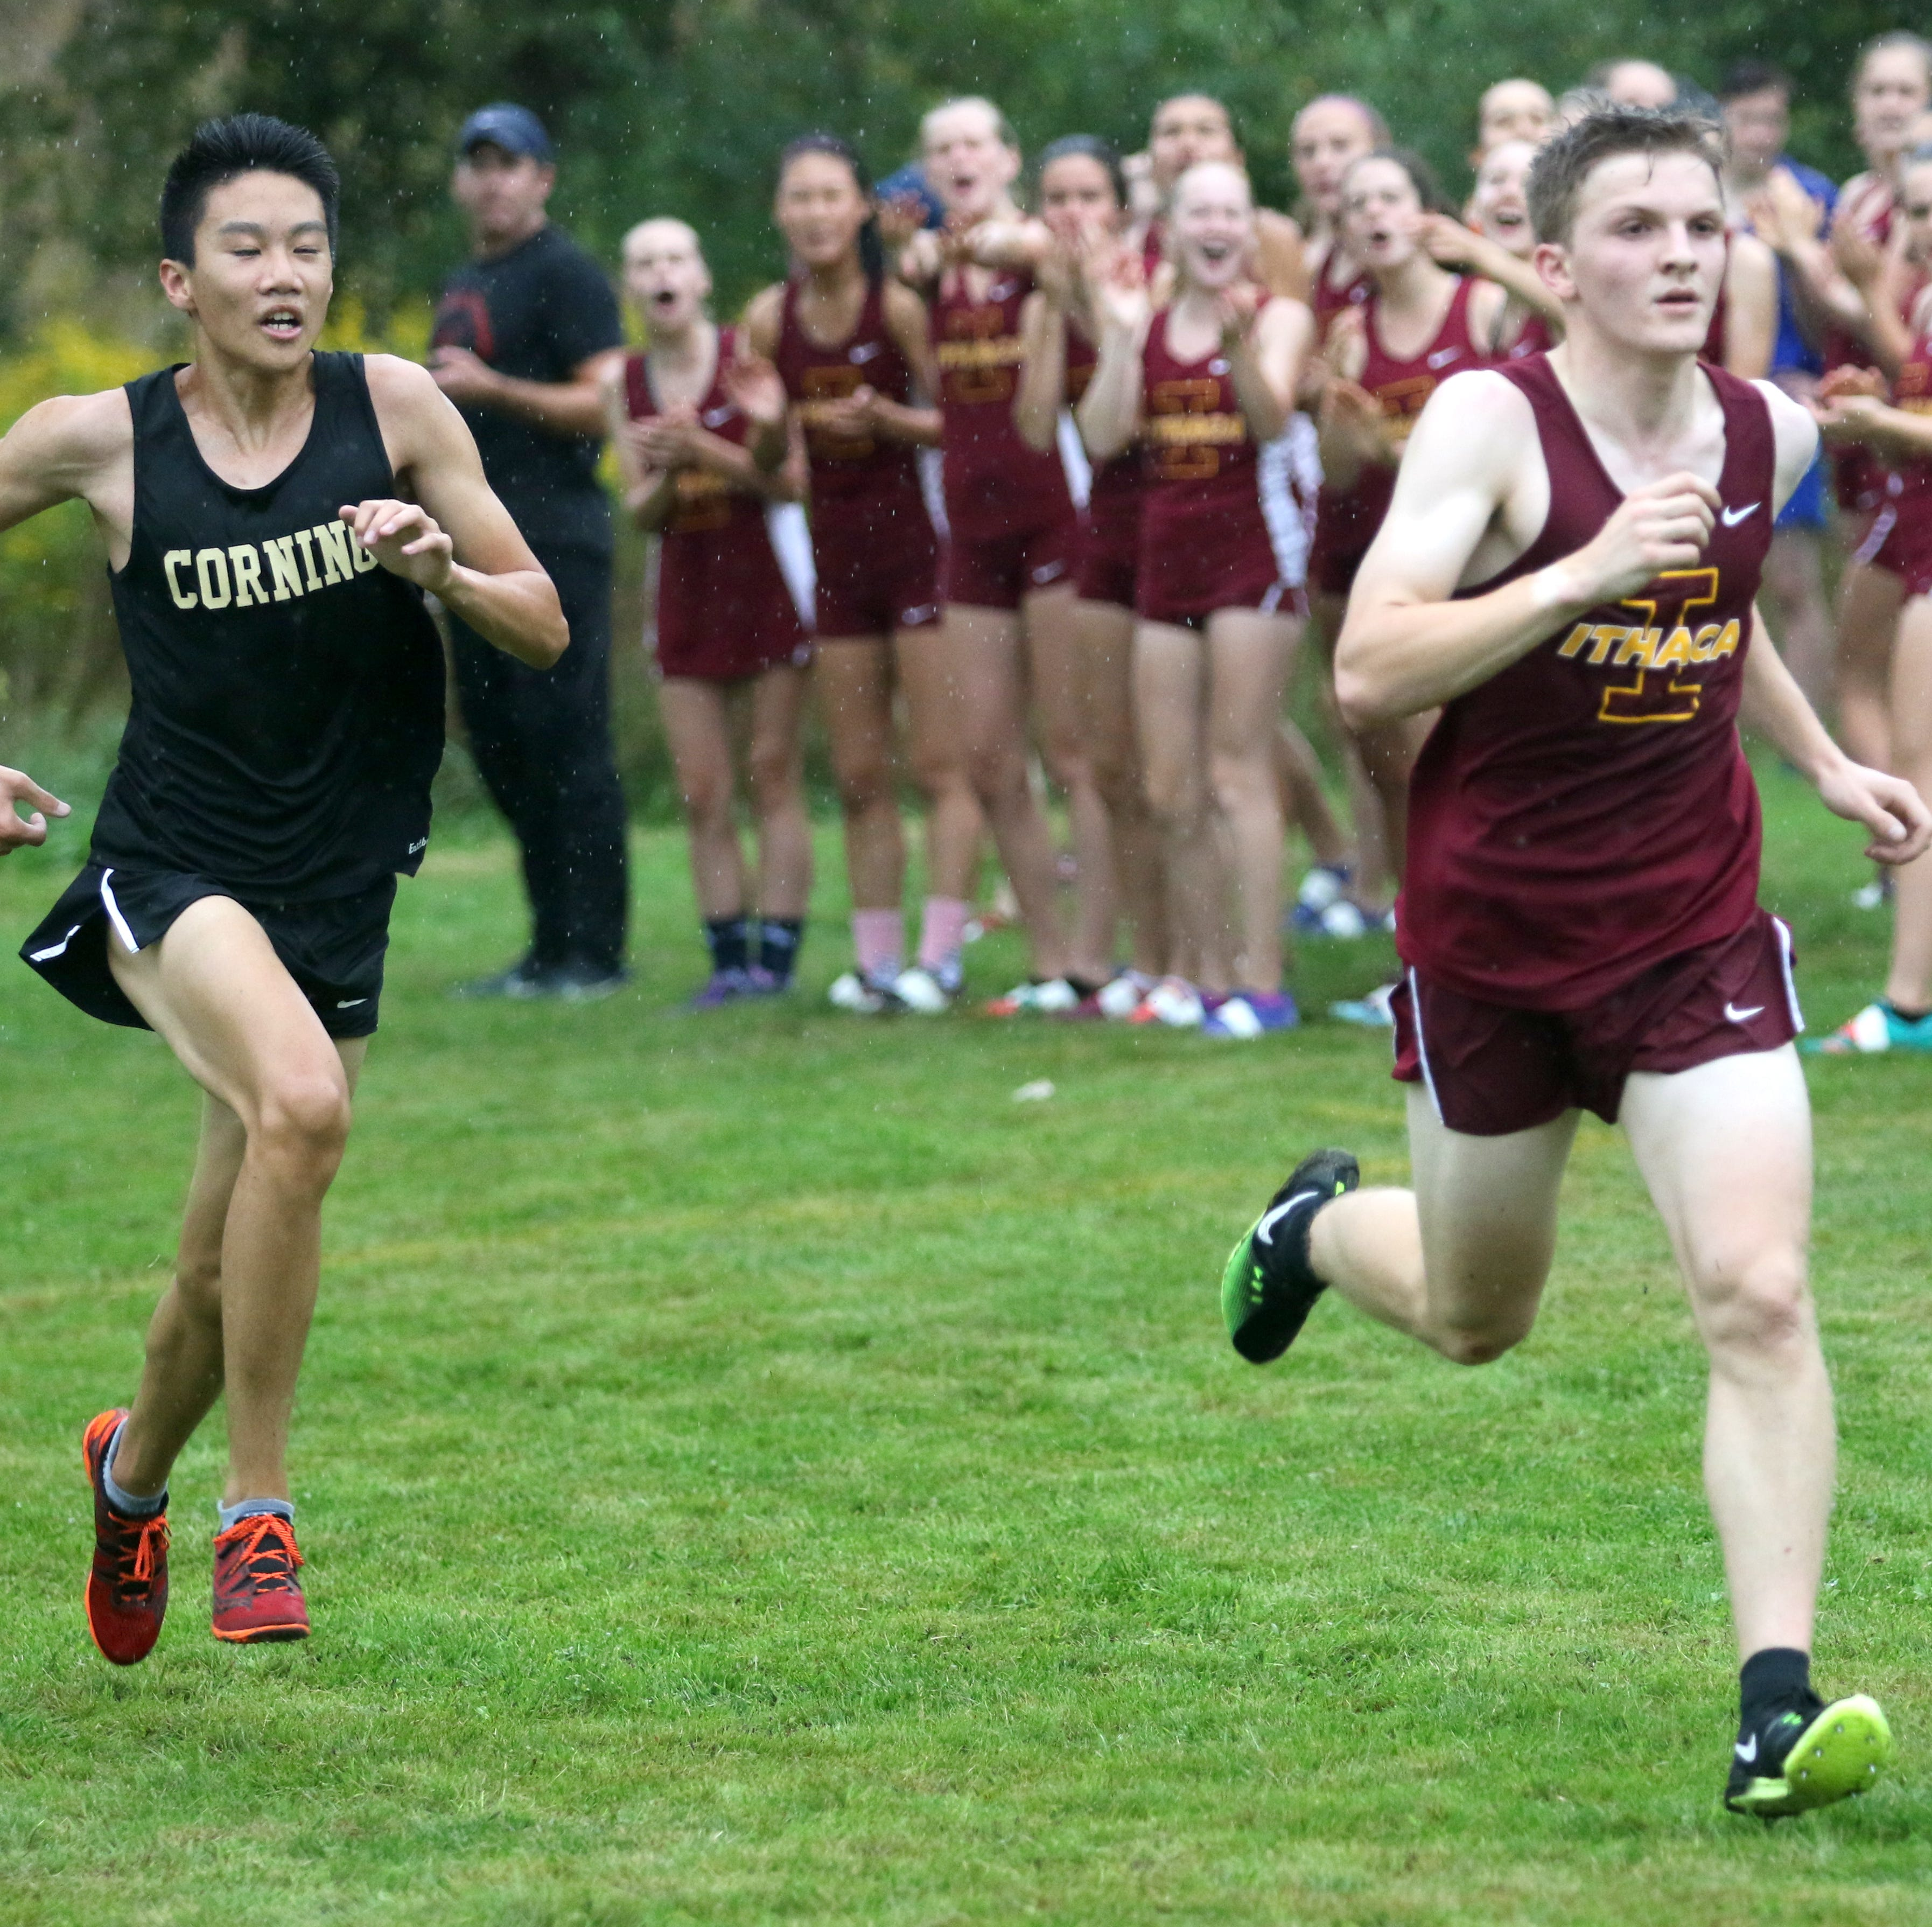 Gallery: STAC West cross country meet